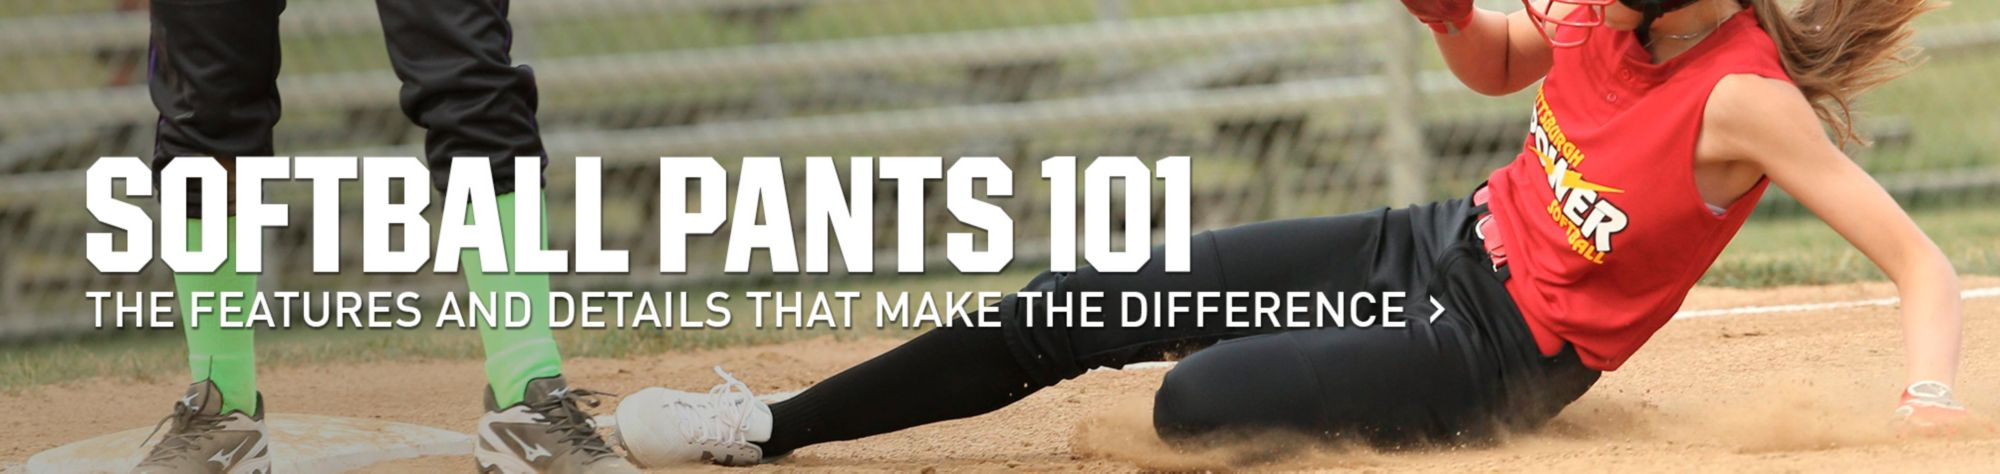 How to Buy Softball Pants